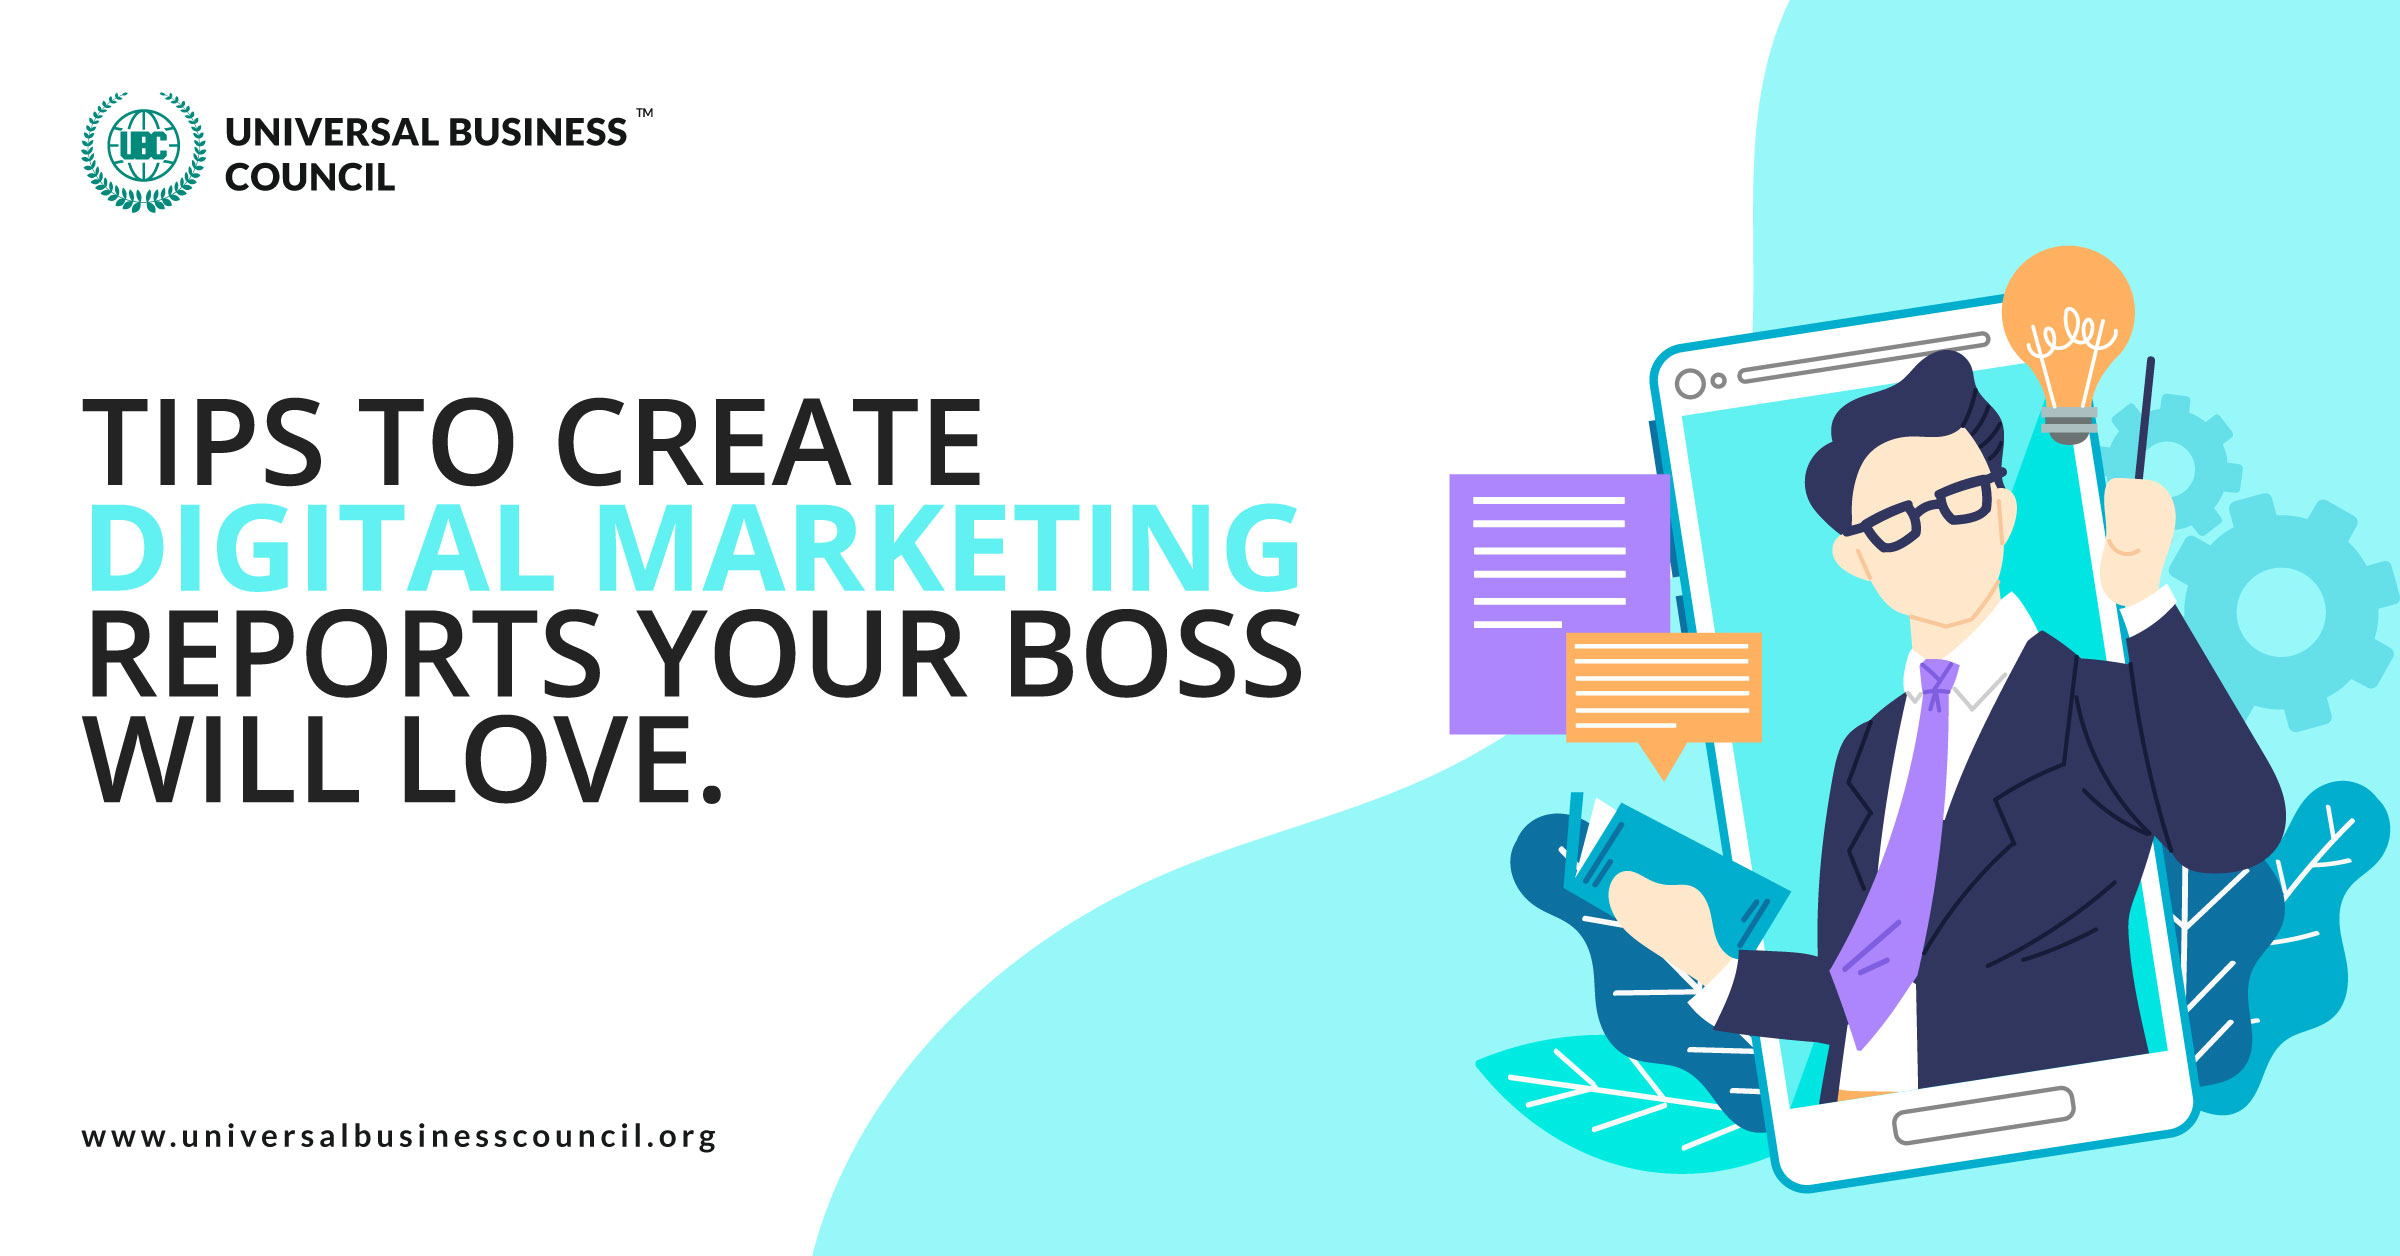 Tips-To-Create-Digital-Marketing-Reports-Your-Boss-Will-Love